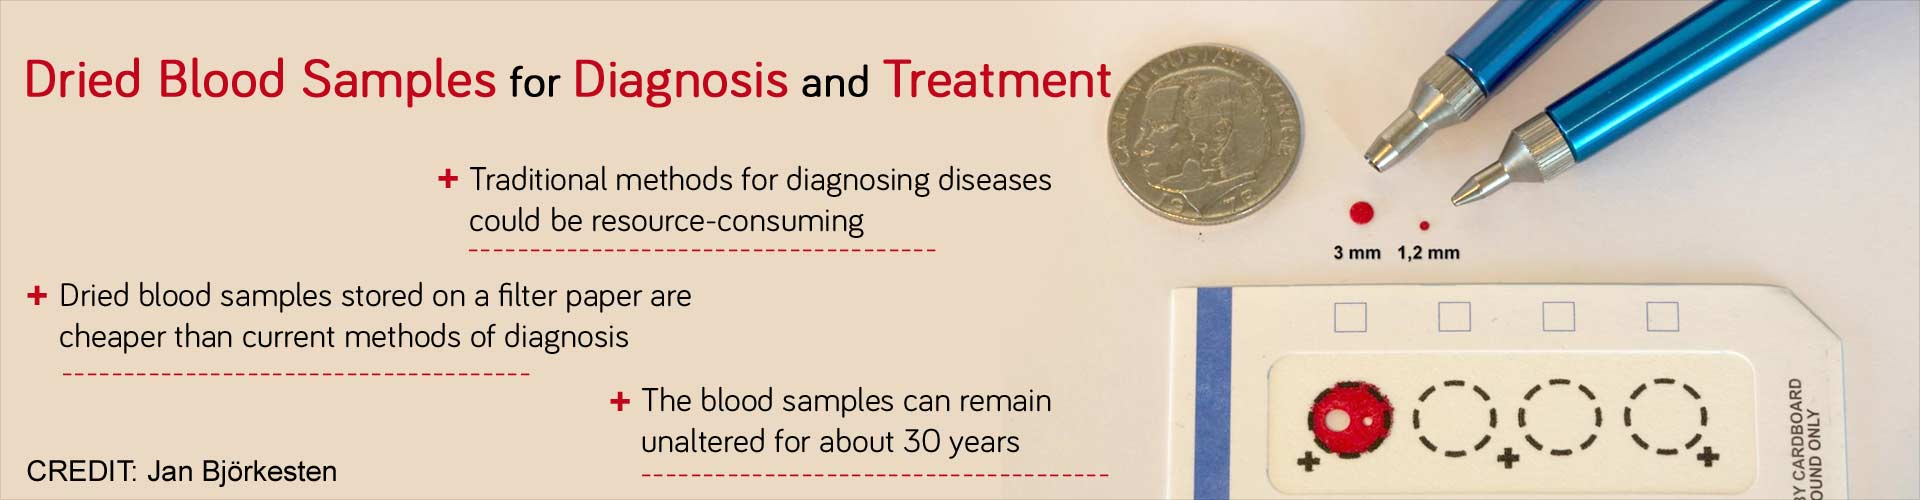 Dried blood samples for diagnosis and treatment